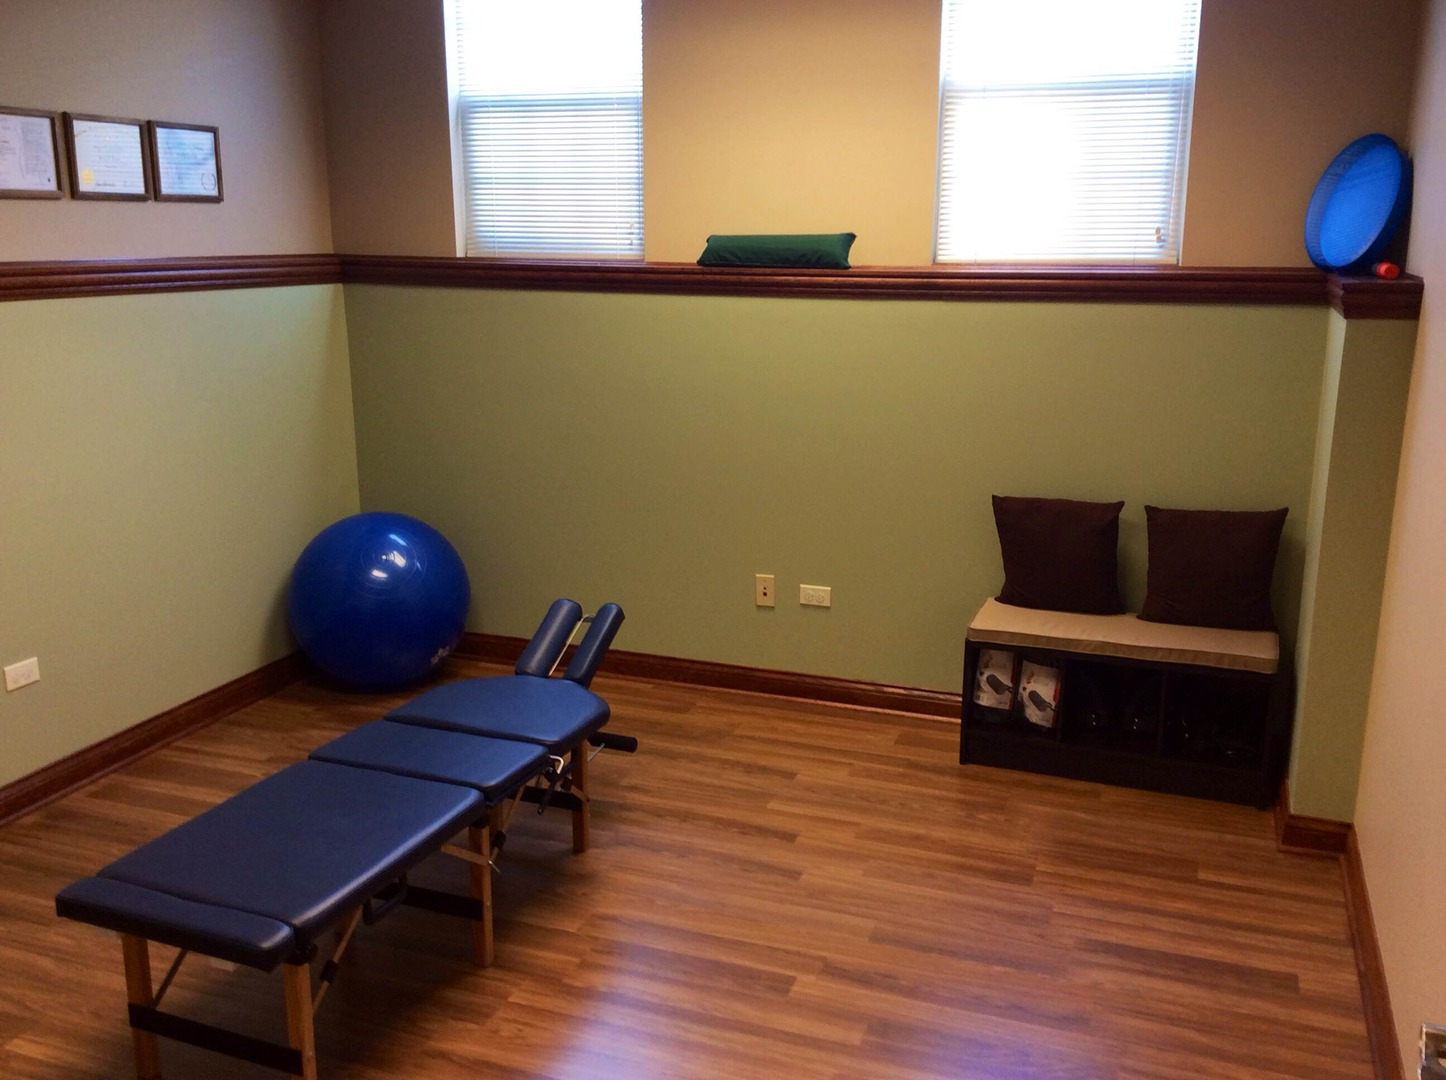 physical therapy and treatment room